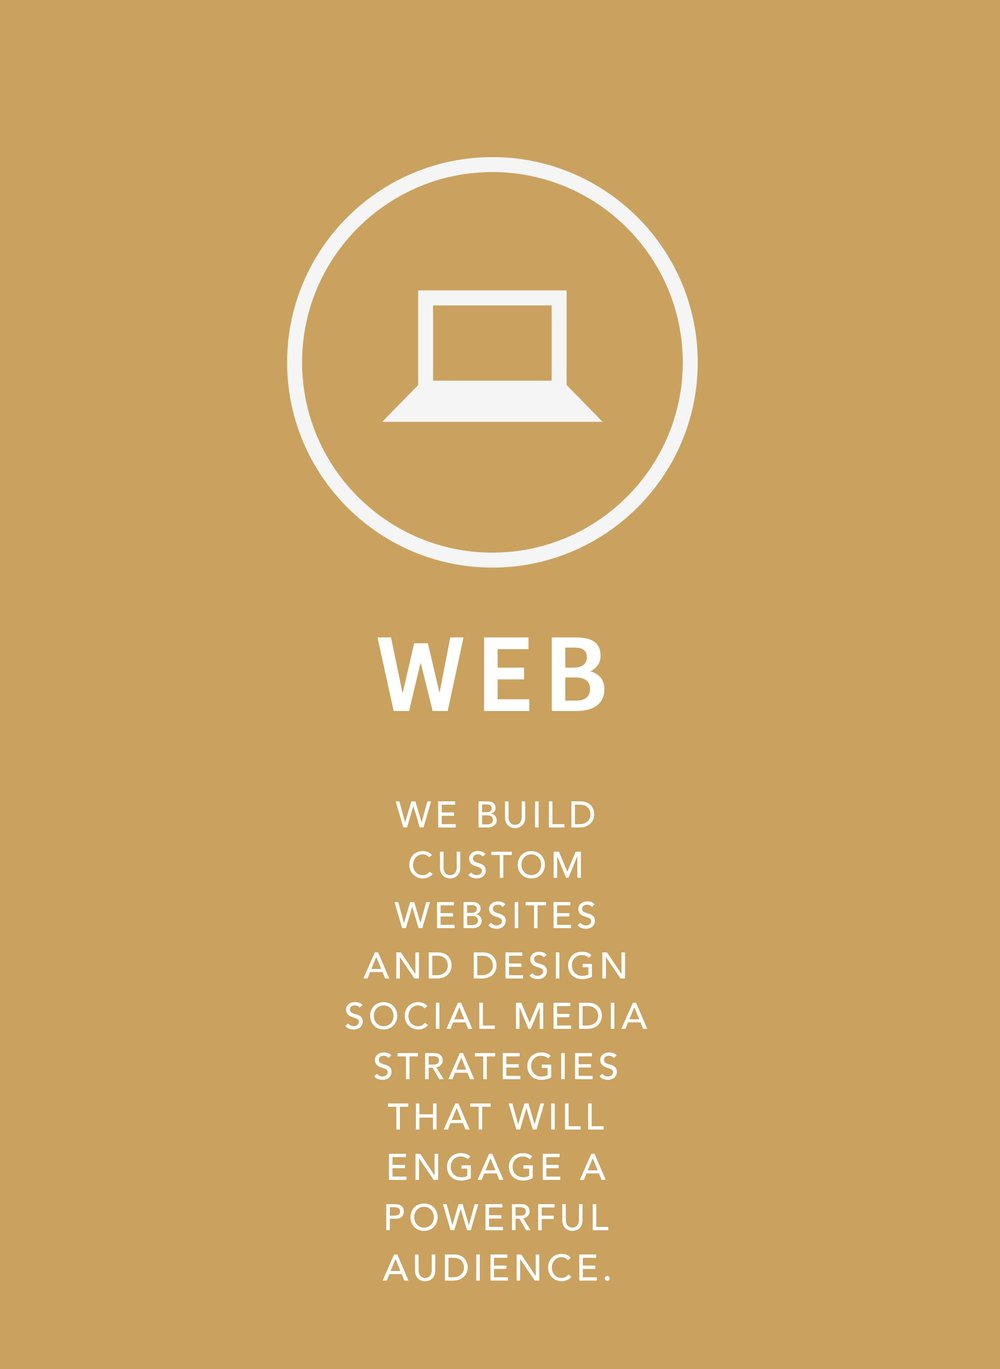 amplify creative services - web.jpg